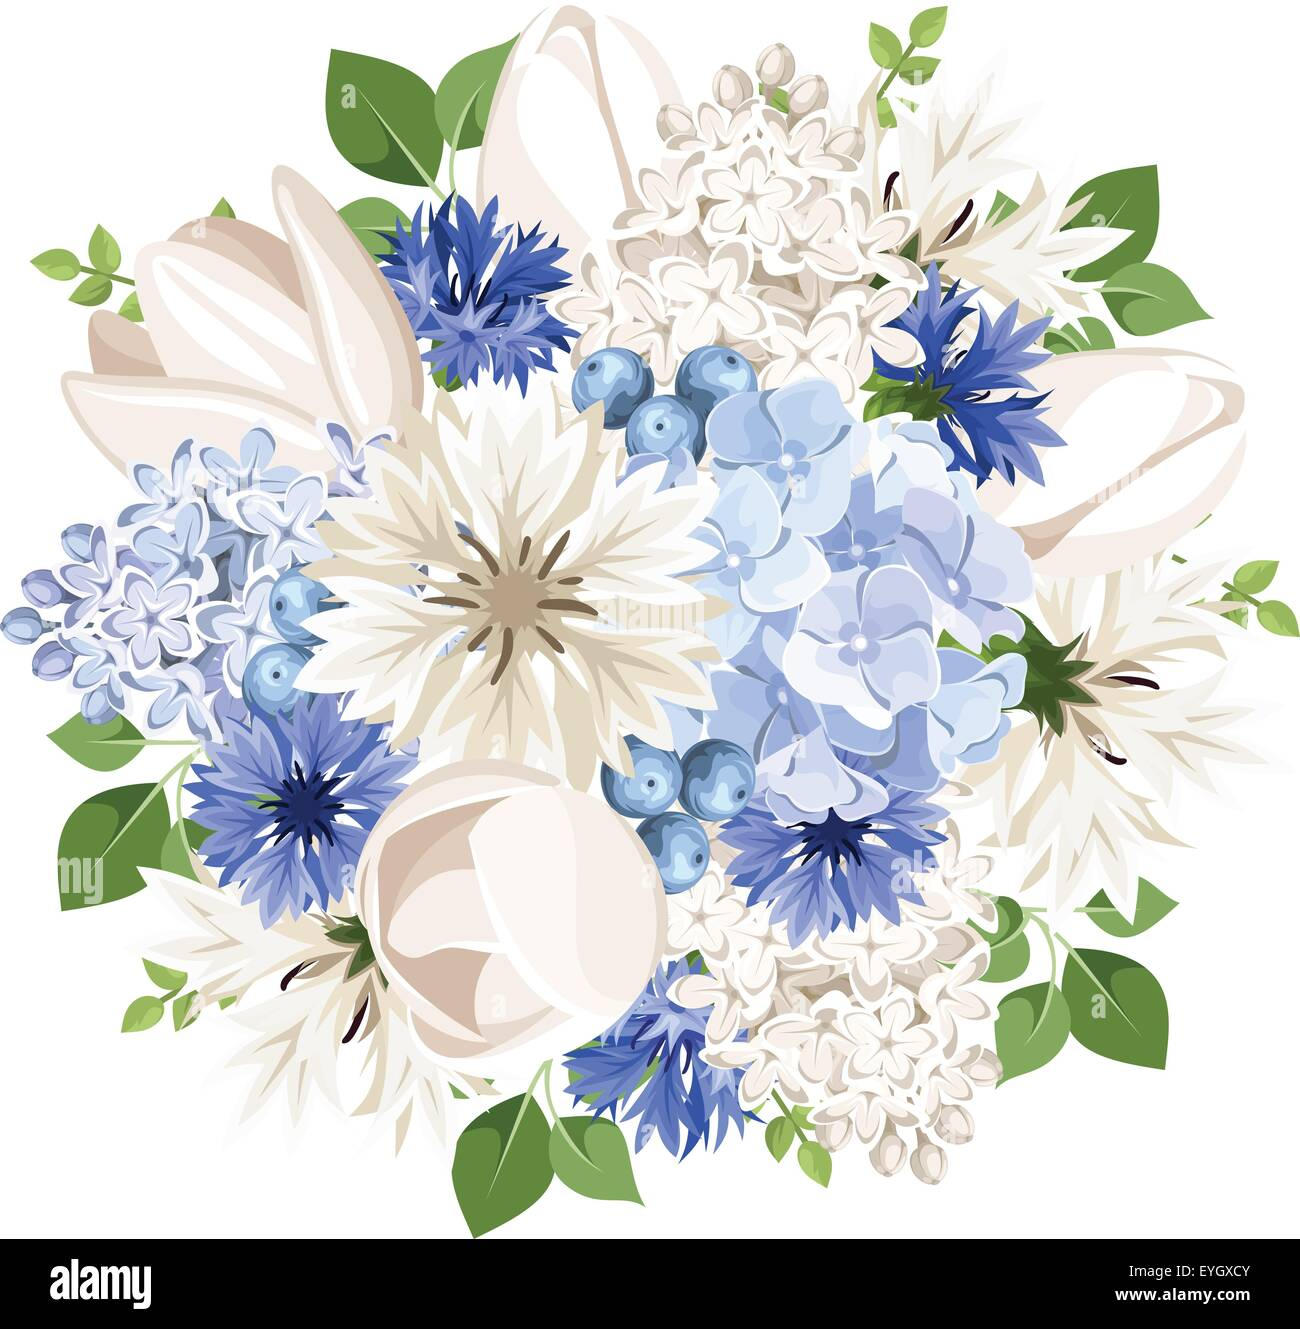 Bouquet Of White And Blue Flowers Vector Illustration Stock Vector